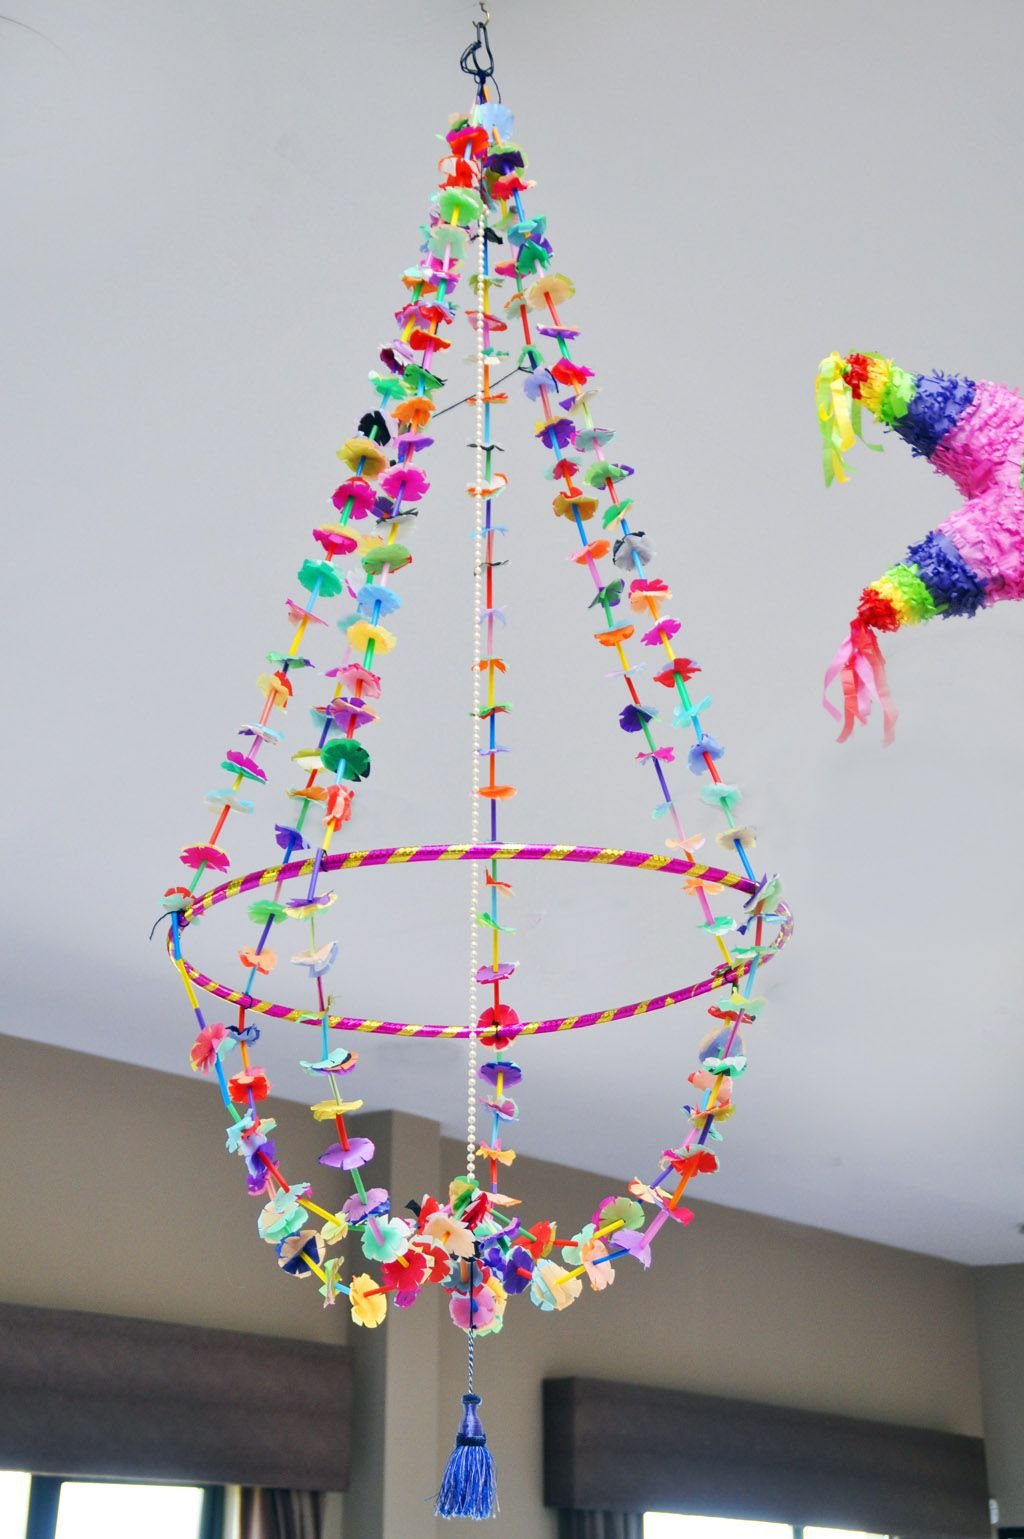 Pajaki | Pajaki | Pinterest | Kids art activities, Hanging ... for Paper Chandelier Craft  59dqh